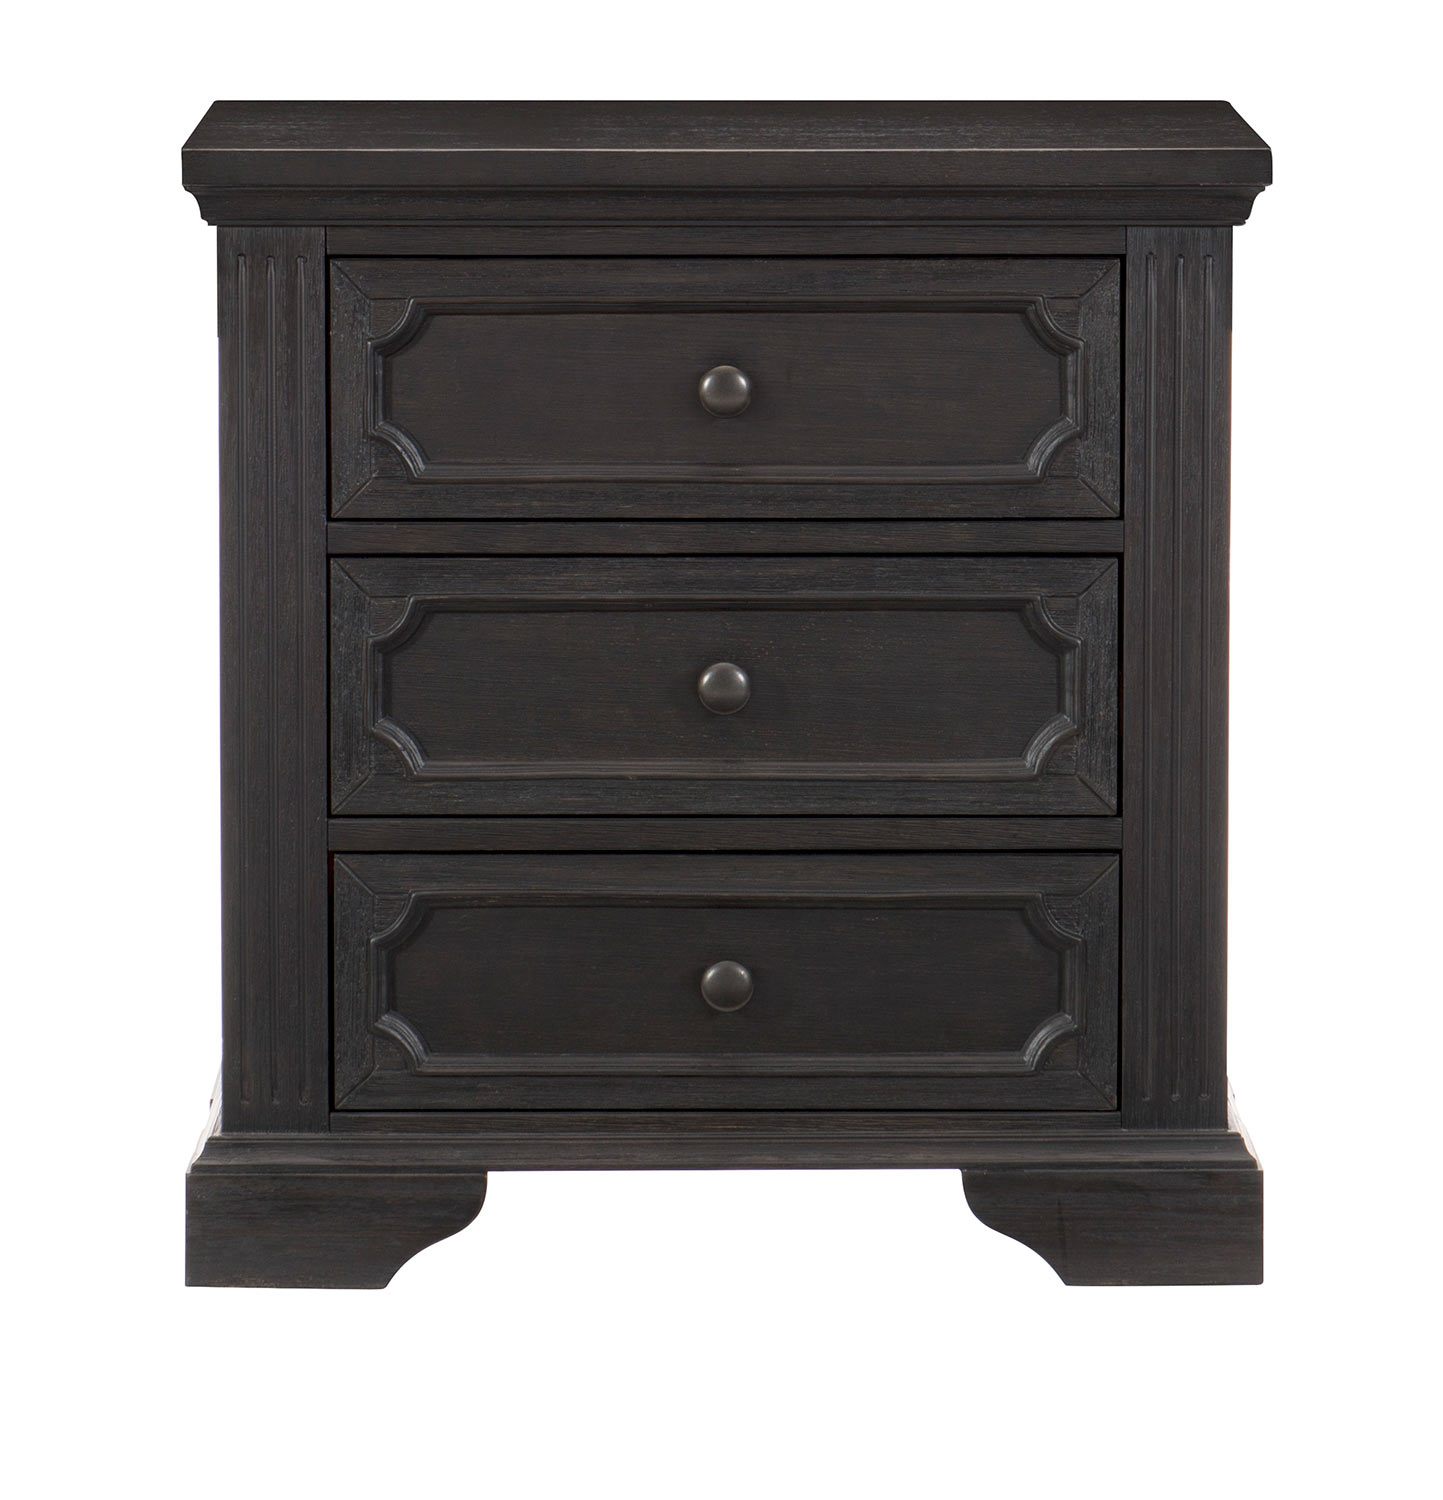 Homelegance Bolingbrook Night Stand - Charcoal